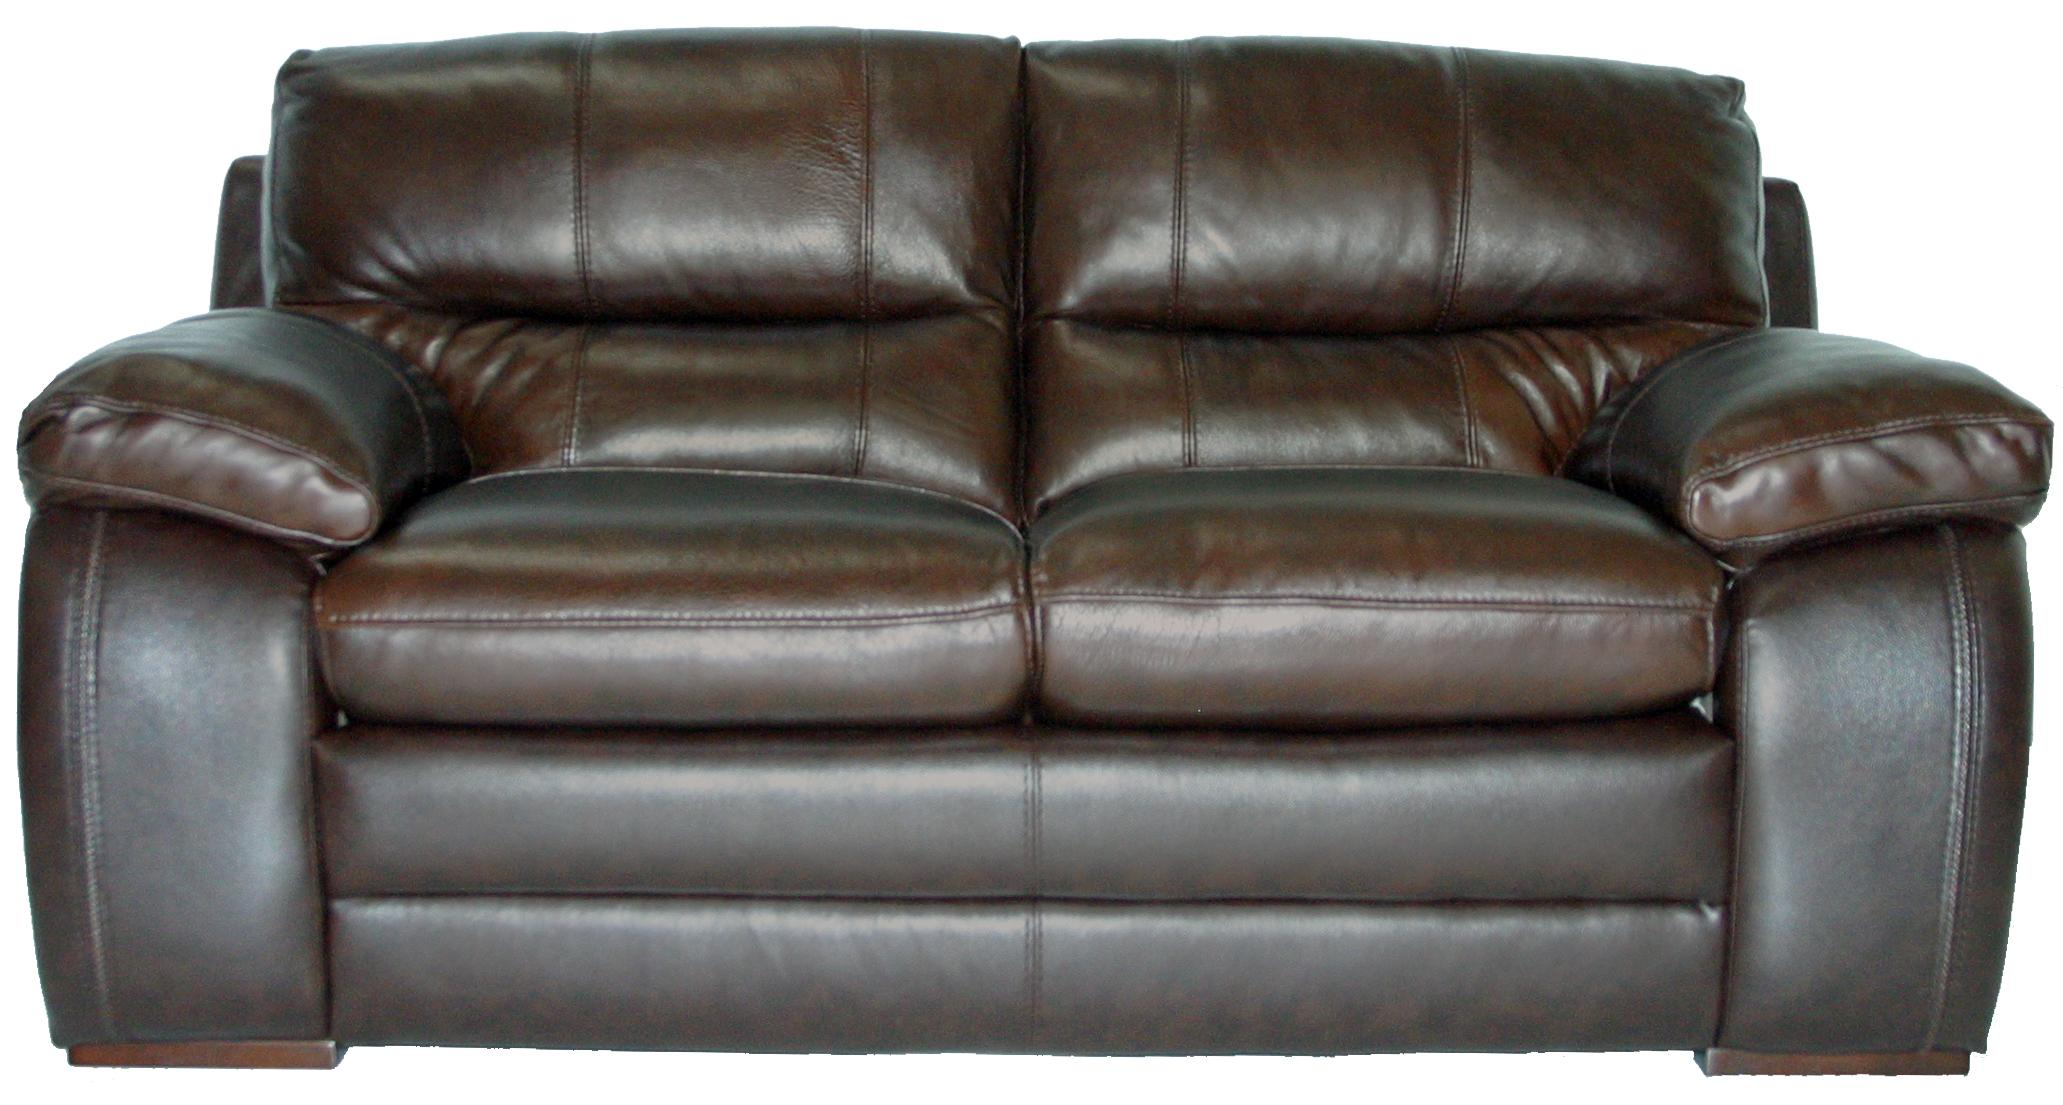 30690 Loveseat by Violino at Furniture Superstore - Rochester, MN